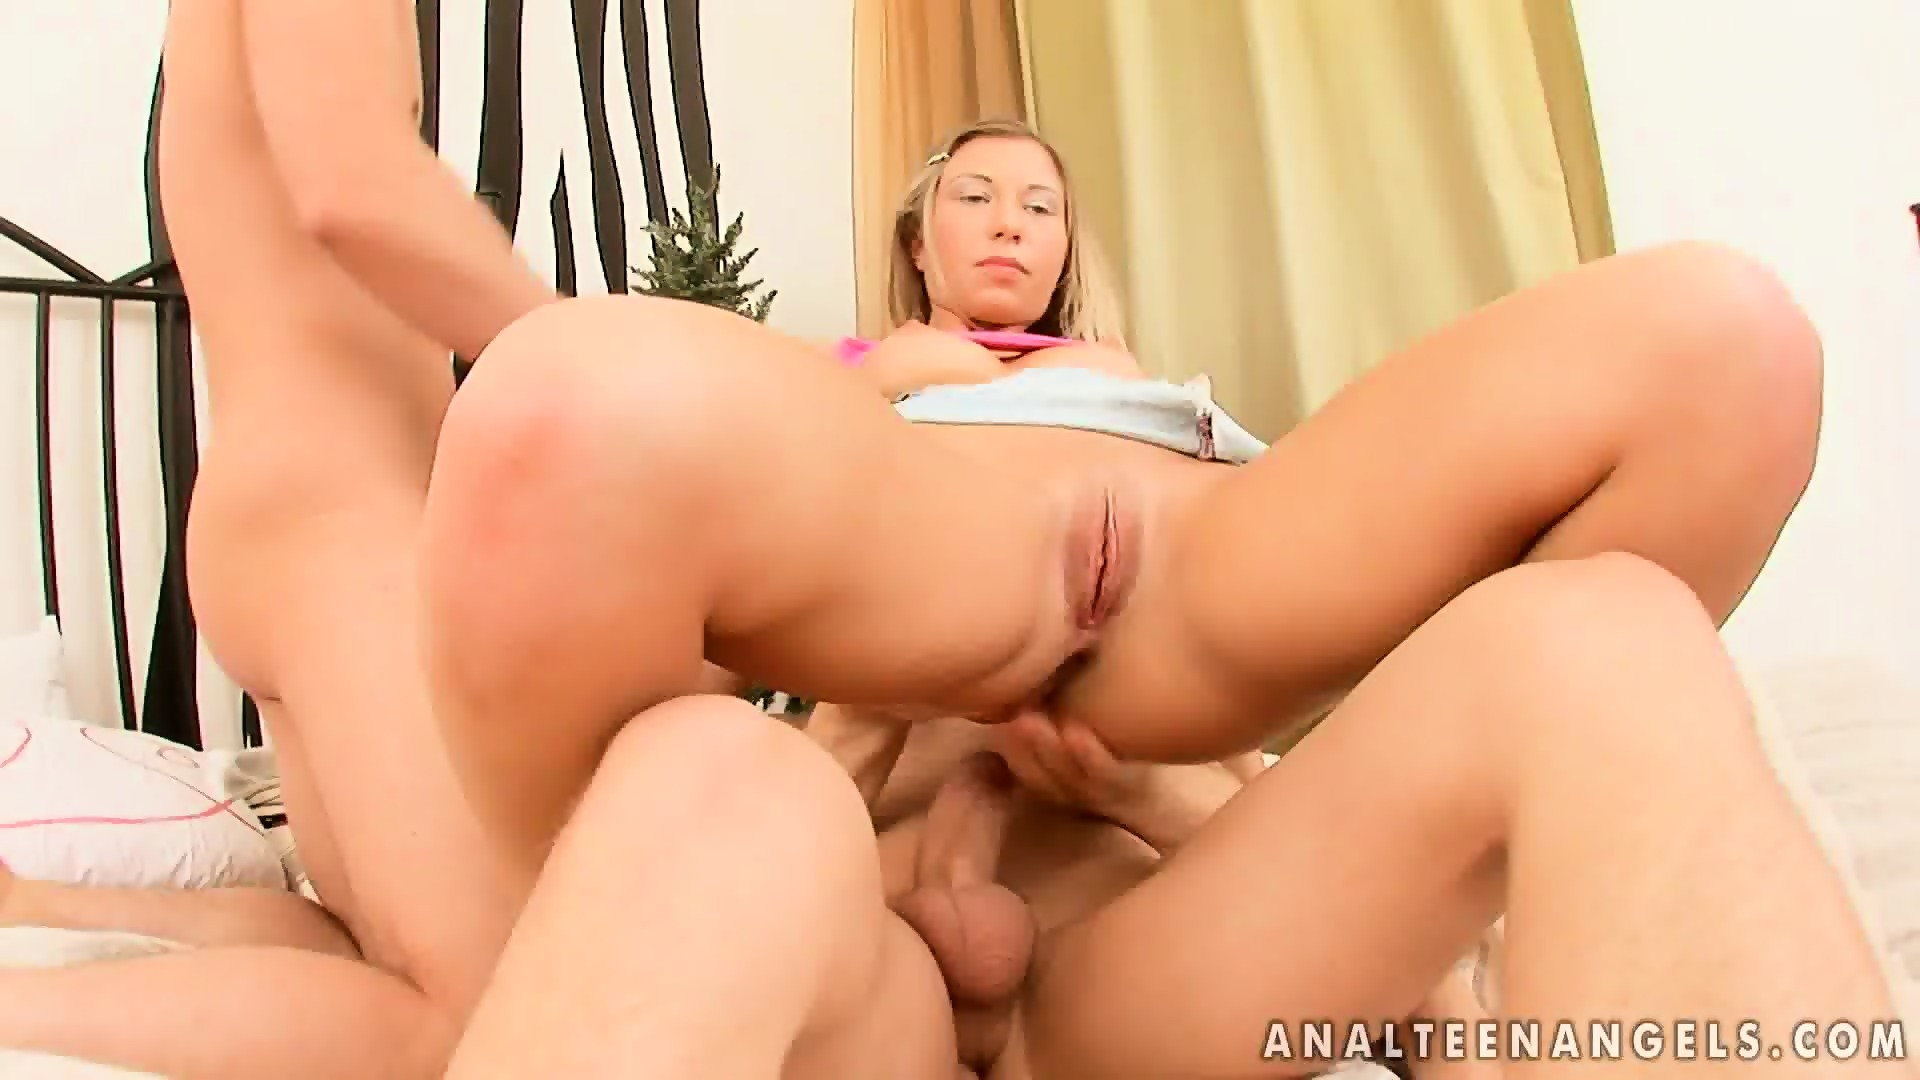 image She loves the double dose of cock